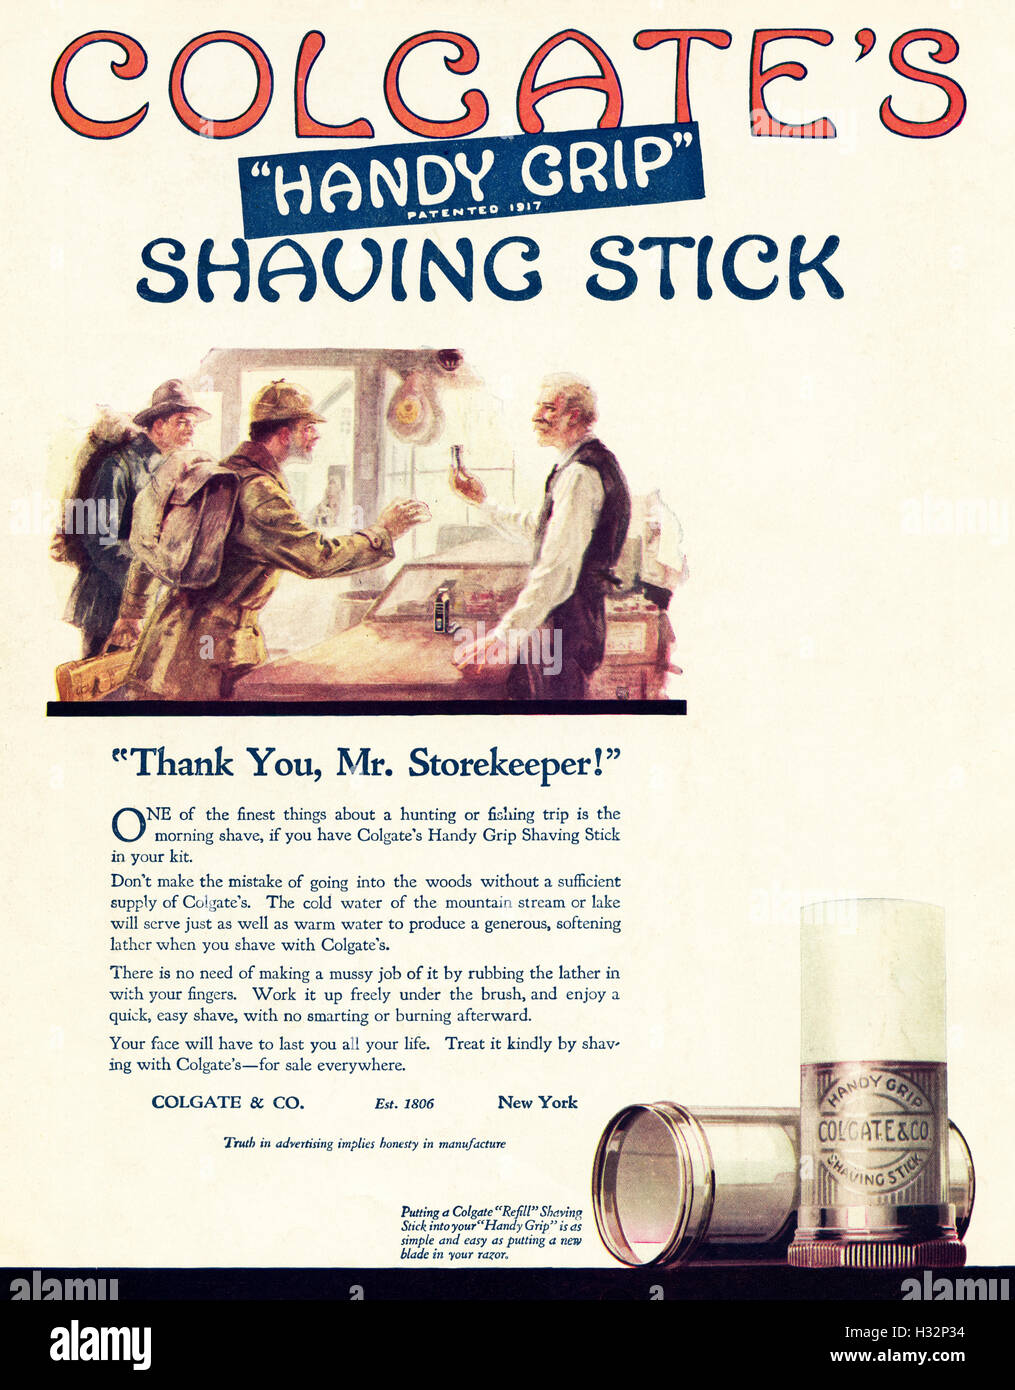 advertising in 1920s america Women's freedom in 1920s america  cigarettes and women's smoking as a symbol of power in the 1920s, see michael schudson, advertising,theuneasypersuasion .